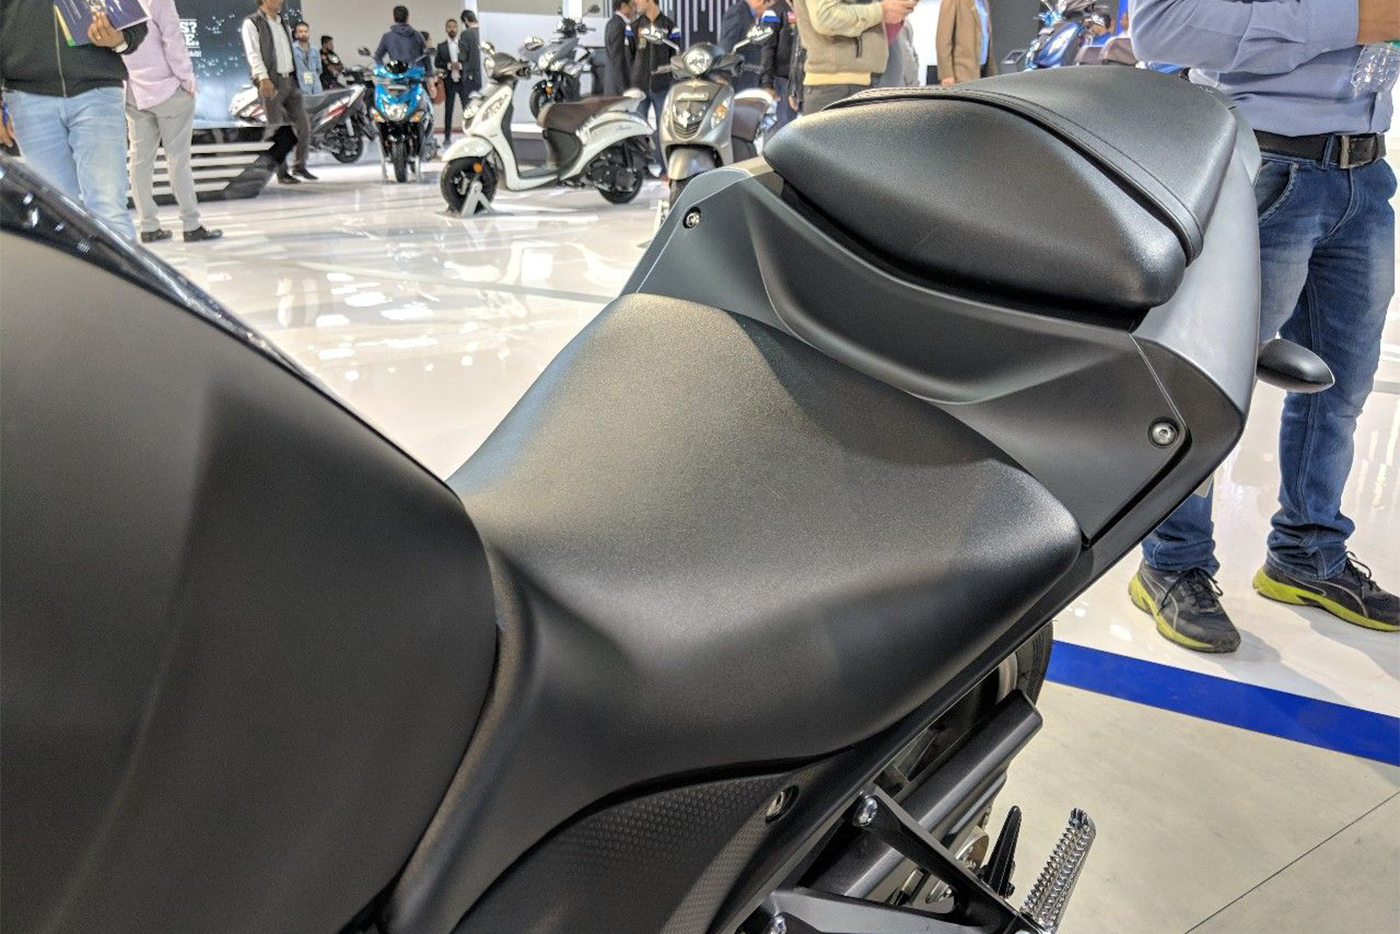 2018-yamaha-yzf-r3-black-seats-at-2018-auto-expo.jpg